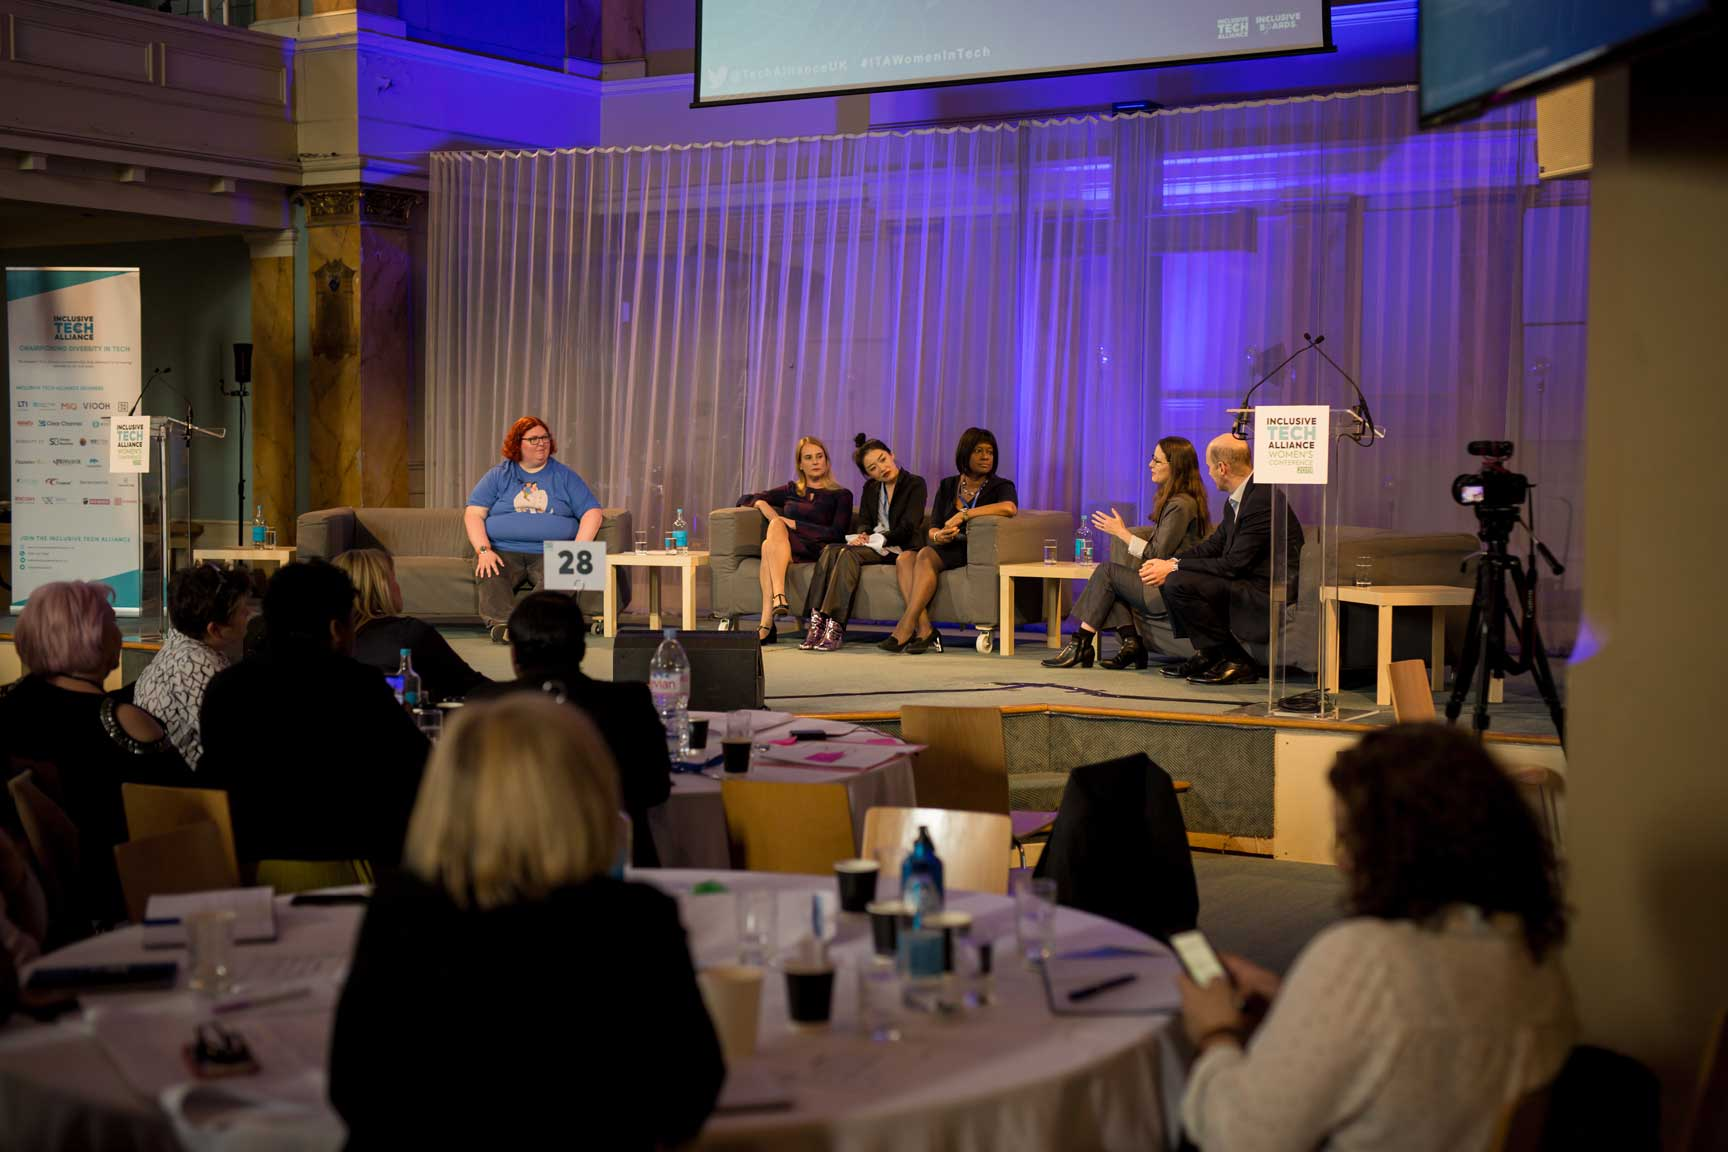 Panel of speakers at conference at Conference with screens and sofa style seating at St Mary's Venue Hire, London